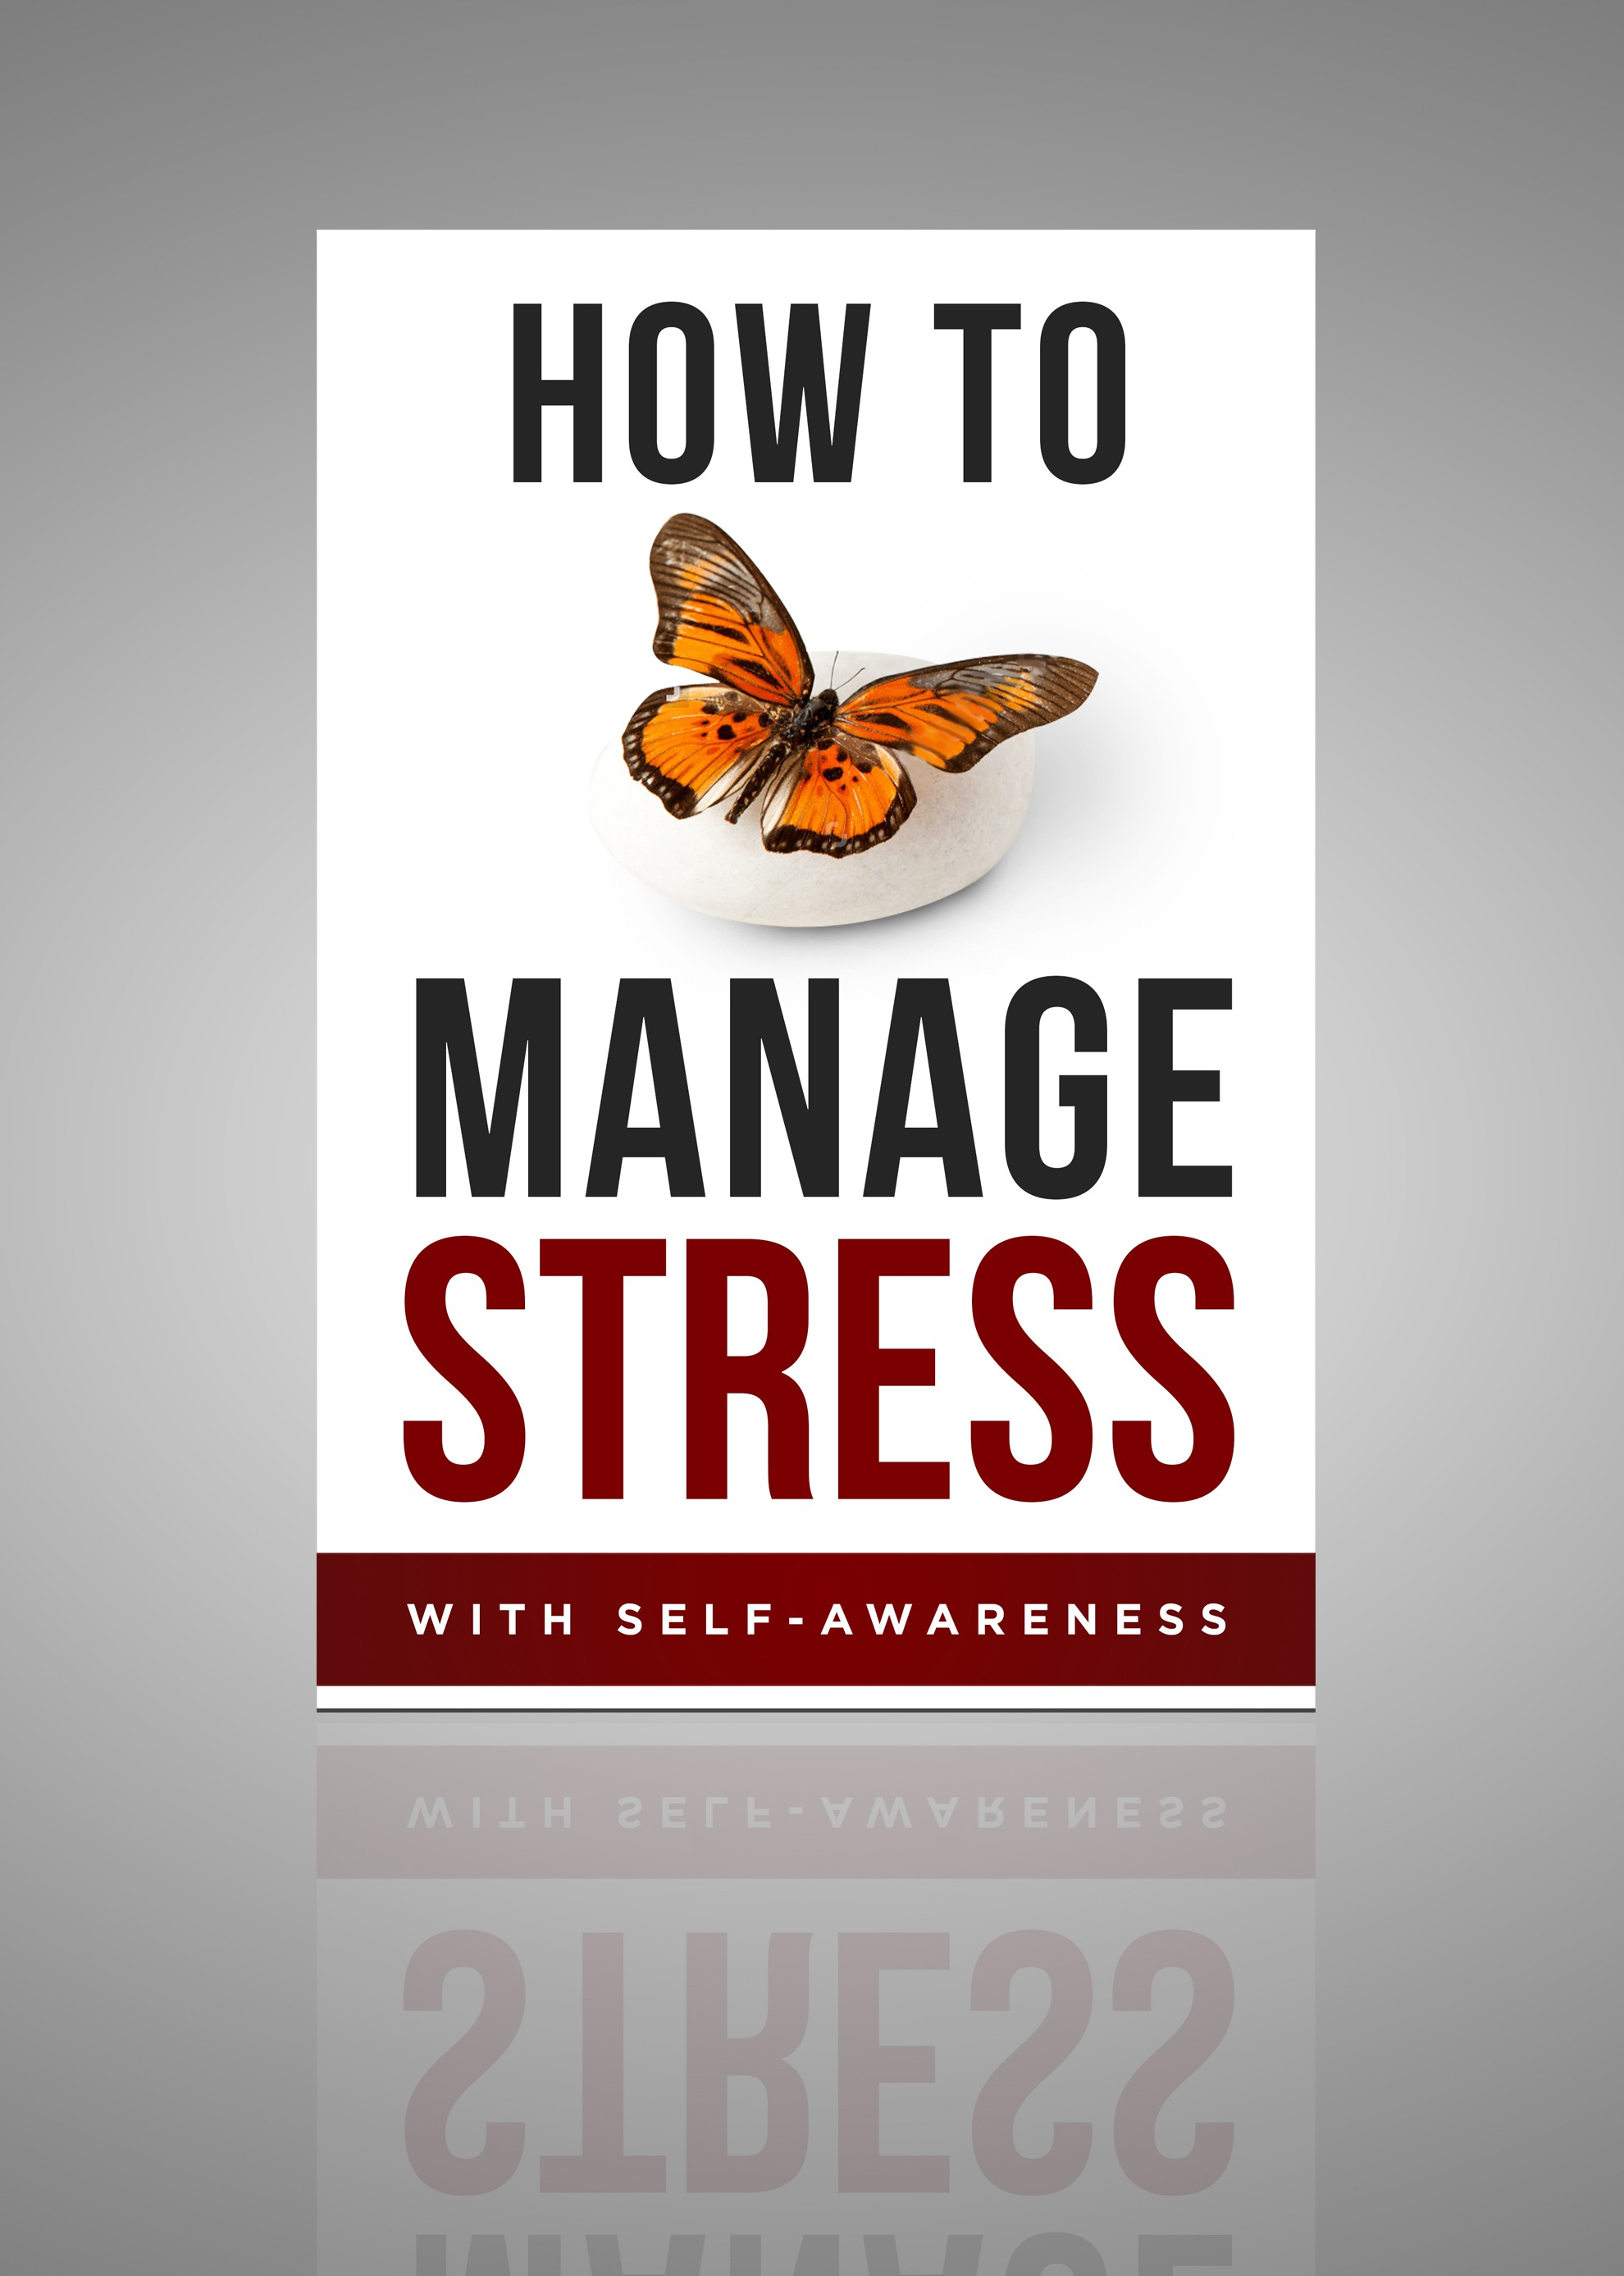 Book cover for self-help book